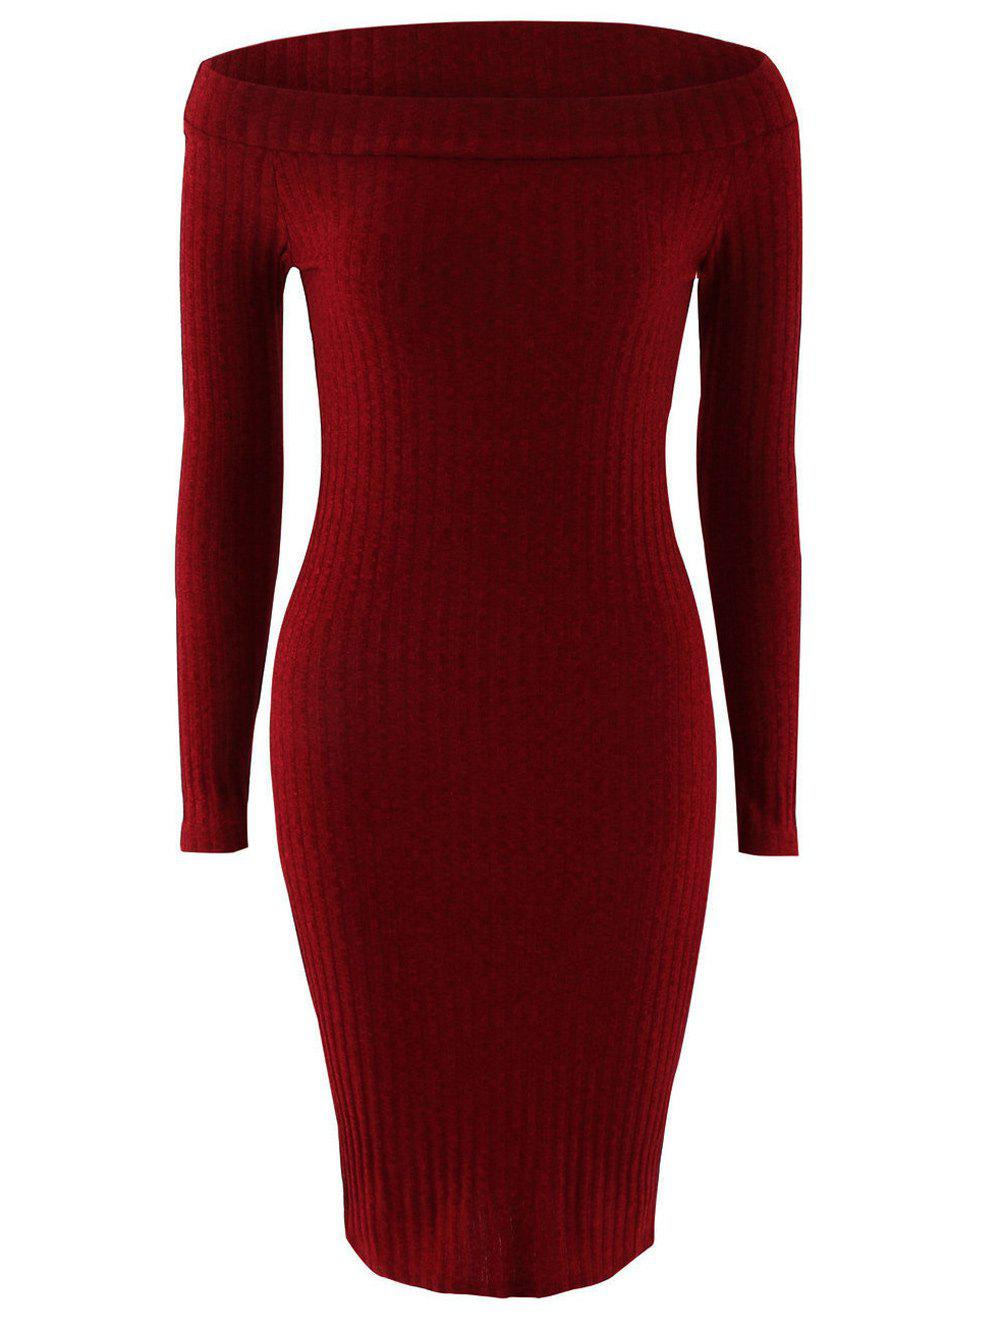 Off The Shoulder Long Sleeve Knit Dress - WINE RED XL